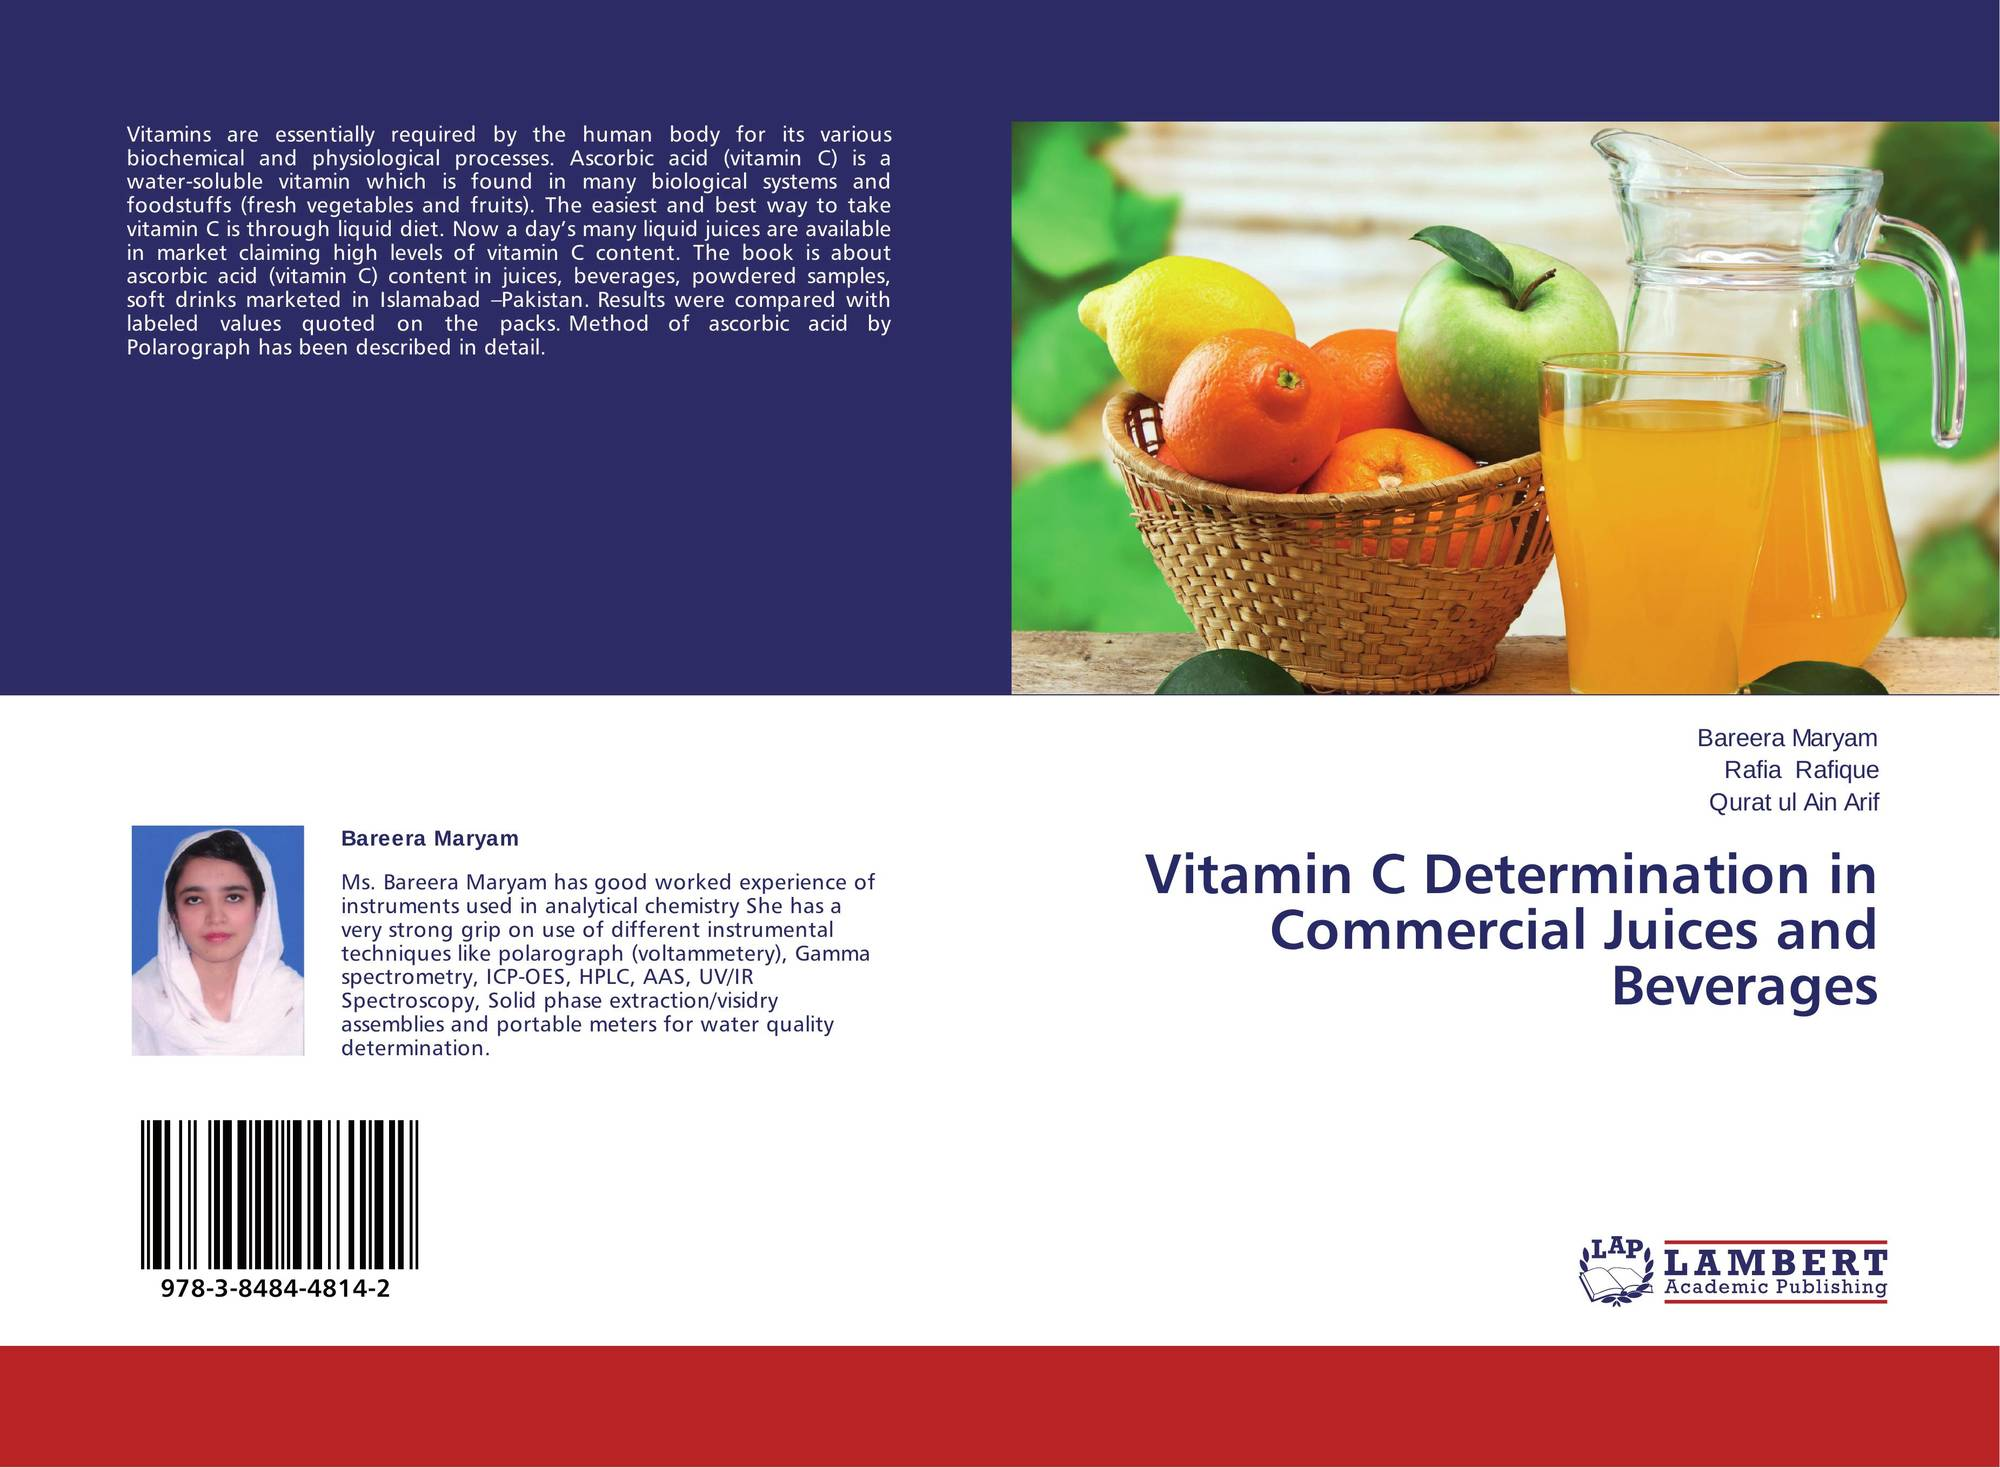 Vitamin C Determination in Commercial Juices and Beverages